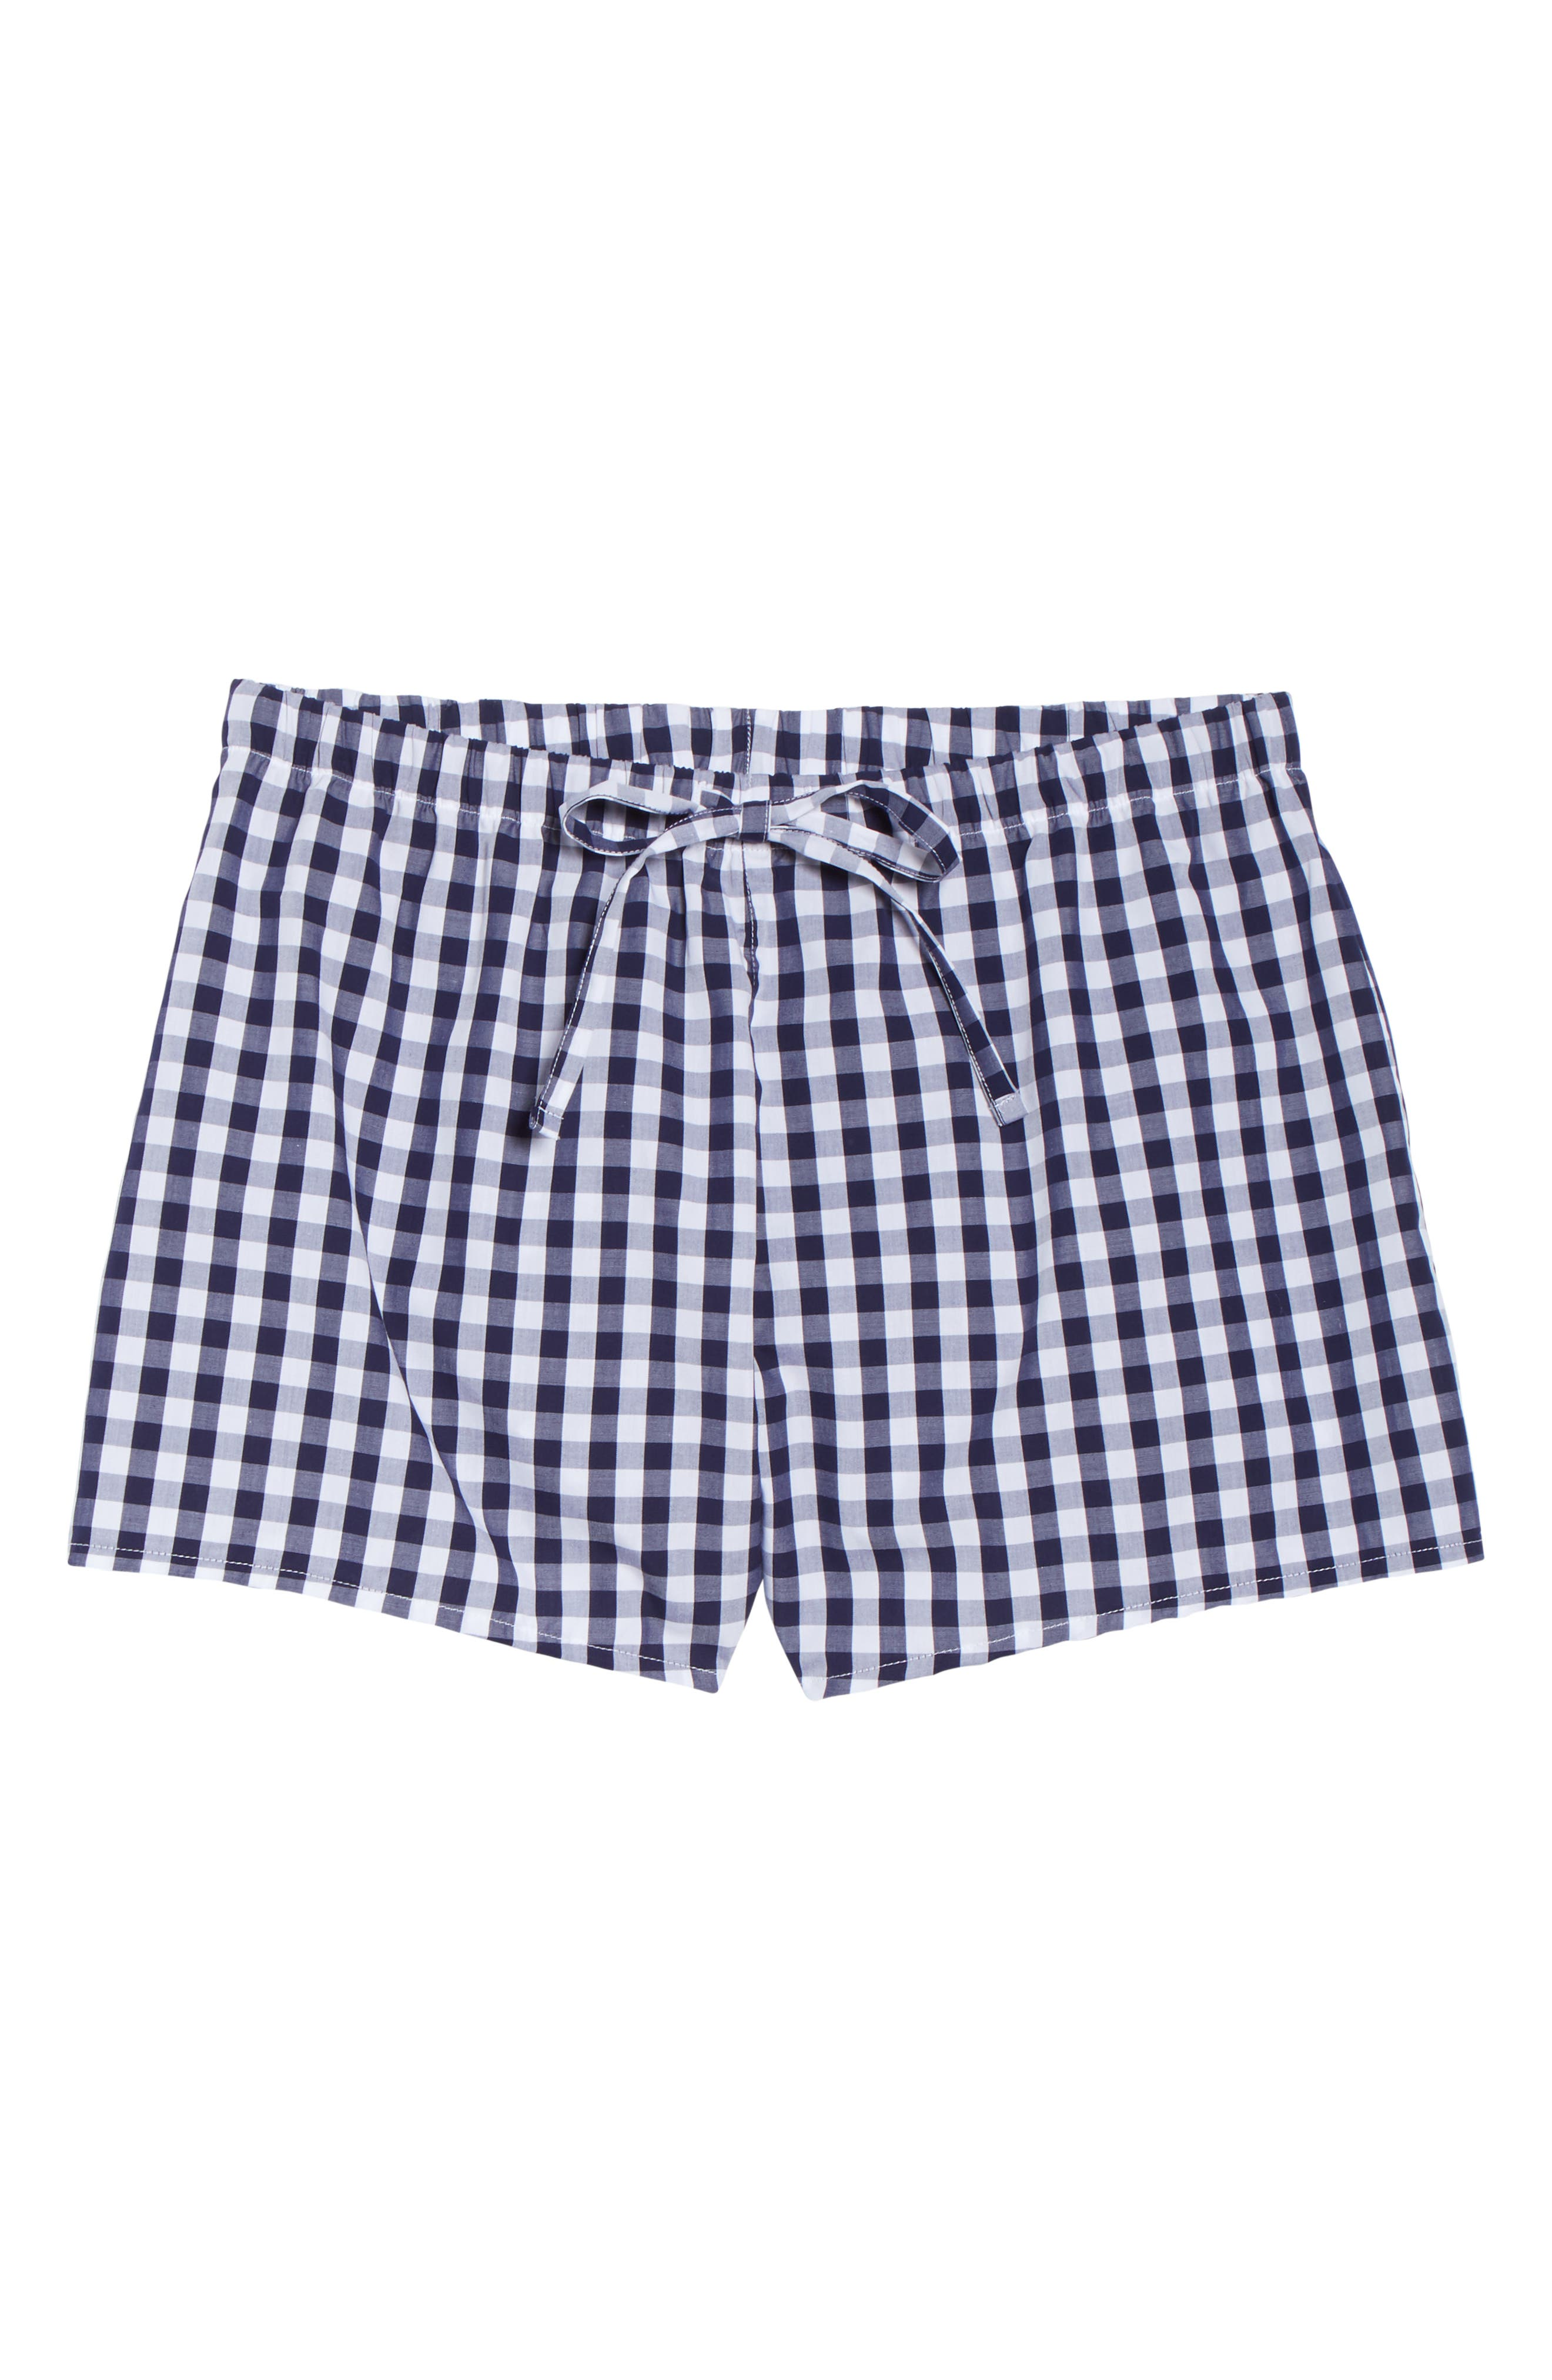 Paloma Women's Pajama Shorts,                             Main thumbnail 1, color,                             LARGE GINGHAM BLUE